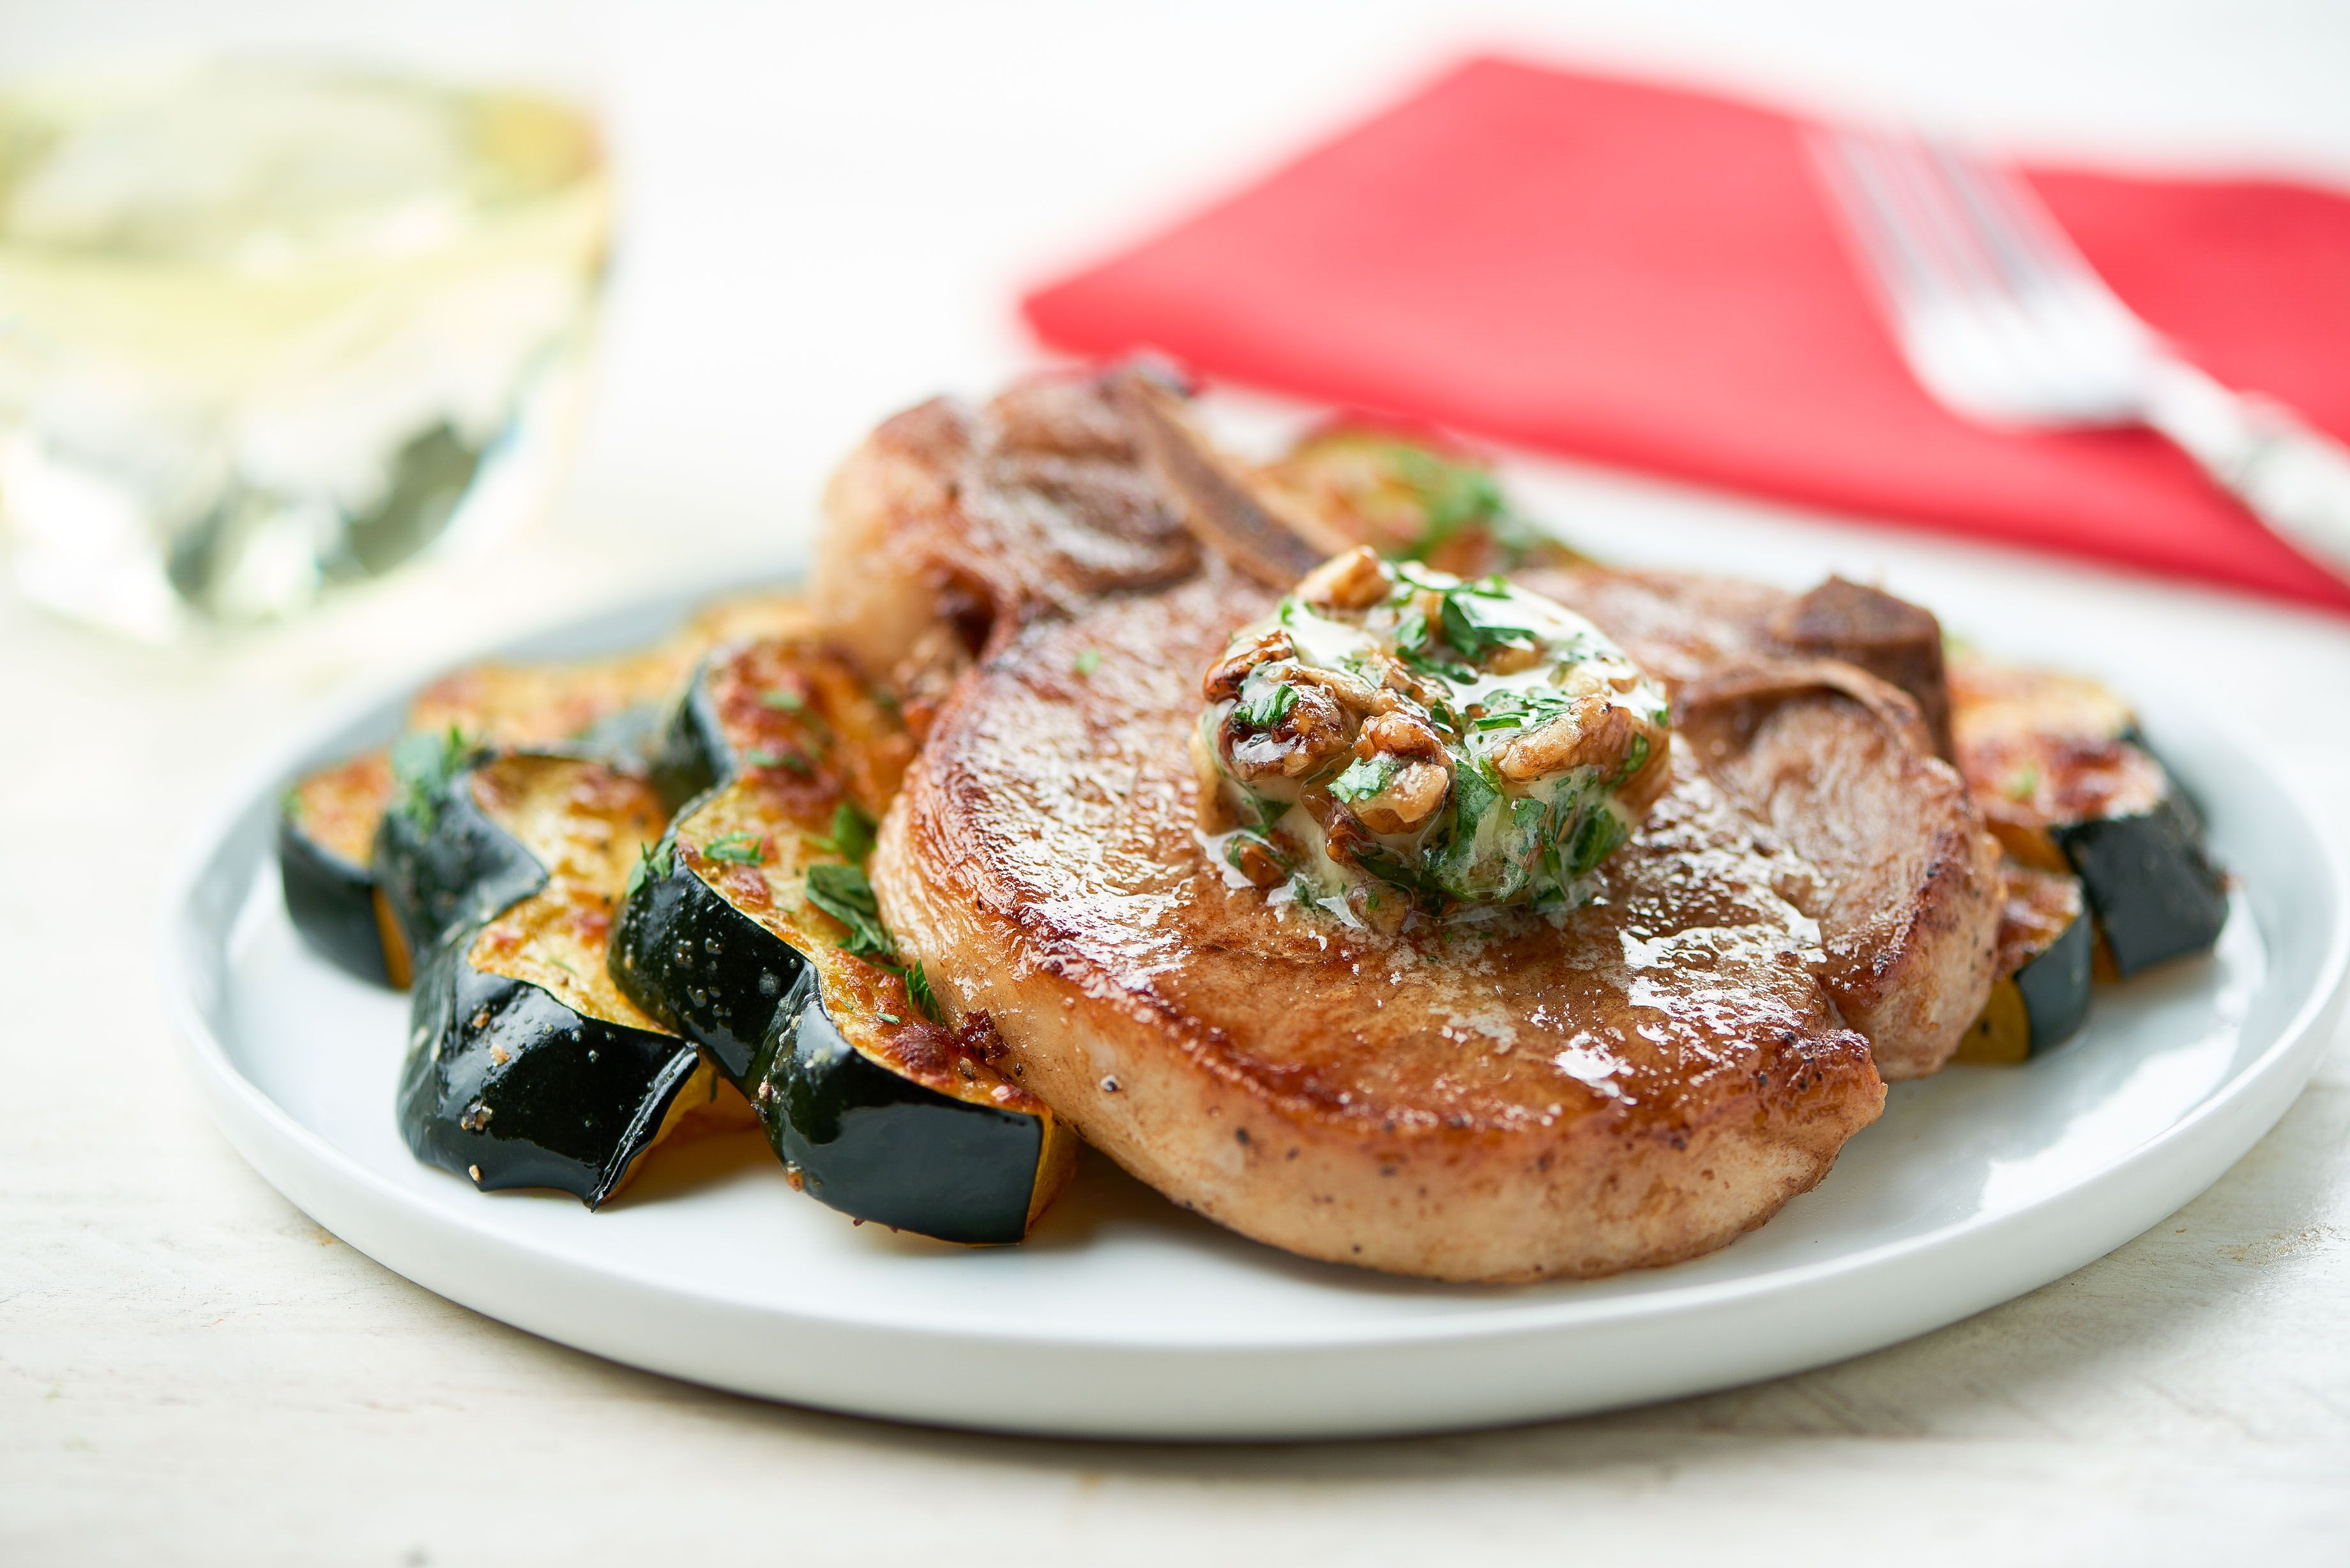 Pork Chop With Candied Walnut Butter And Parmesan Roasted Acorn